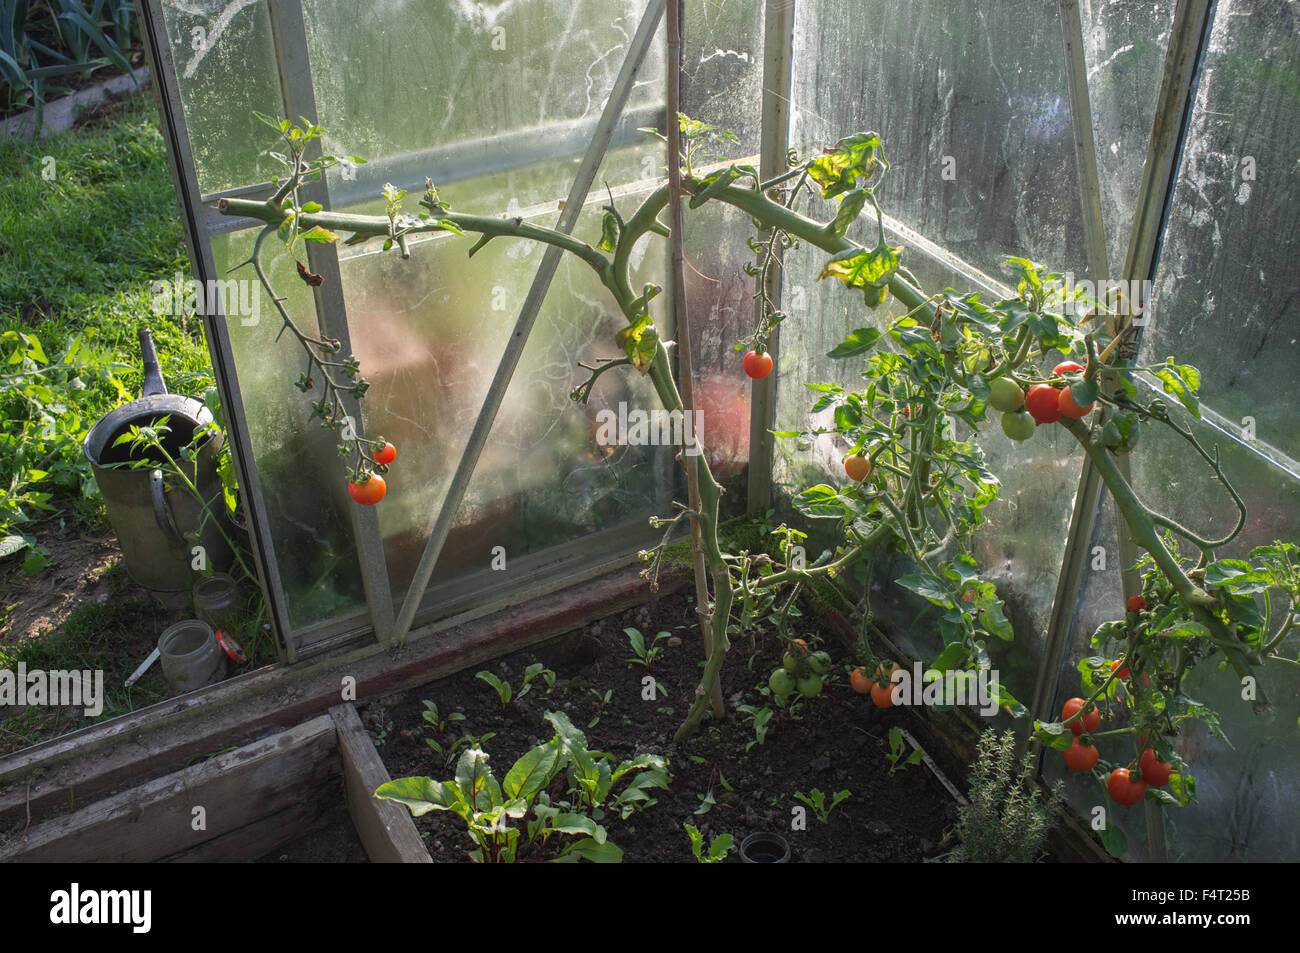 The last of the tomatoes on an autumn day in a damp greenhouse - Stock Image